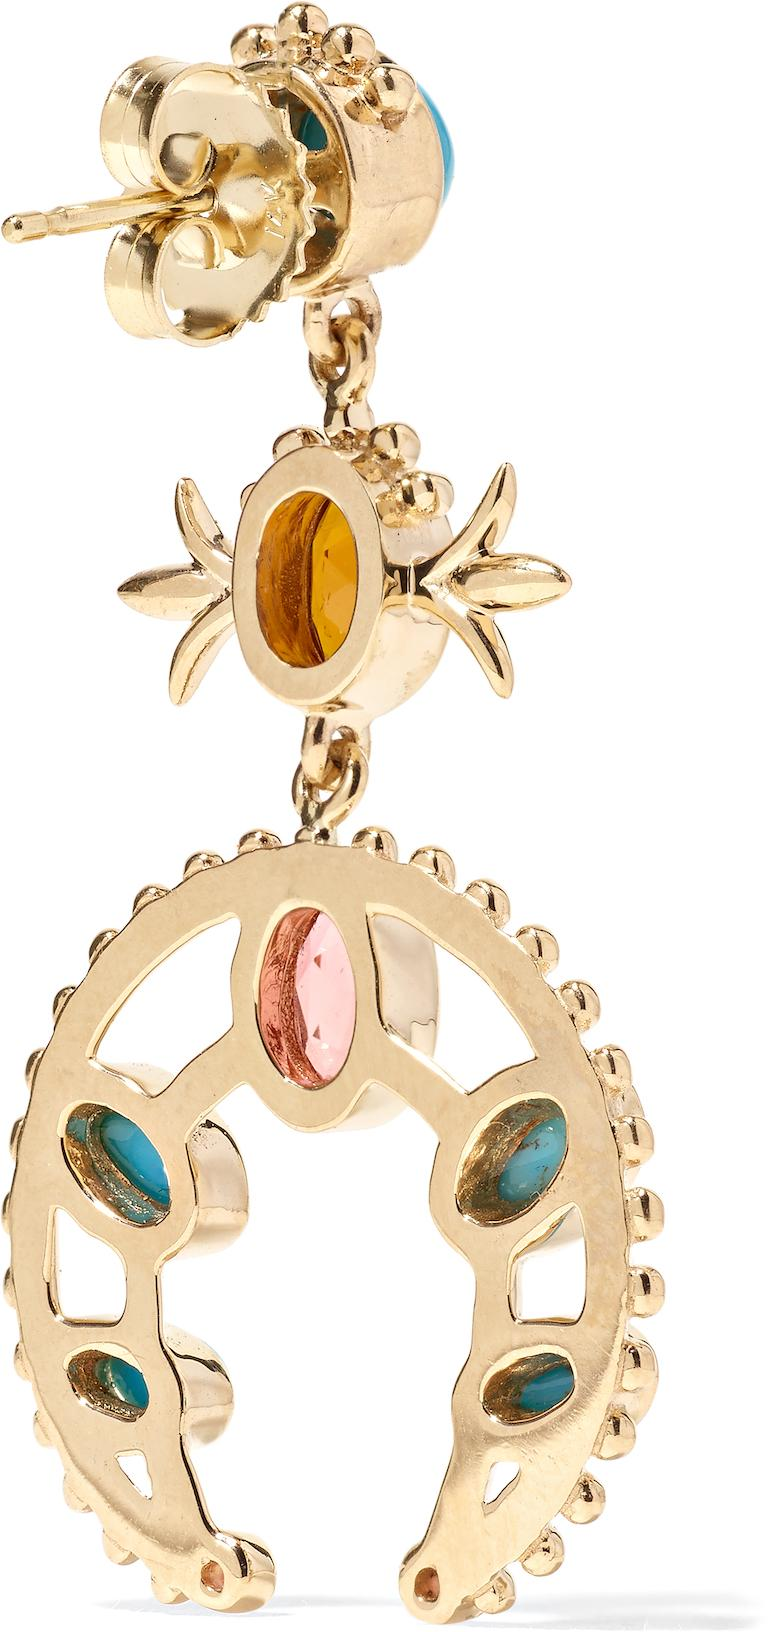 Contemporary Marlo Laz Turquoise Pink Tourmaline Sapphire 14K YG Squash Blossom Earrings For Sale